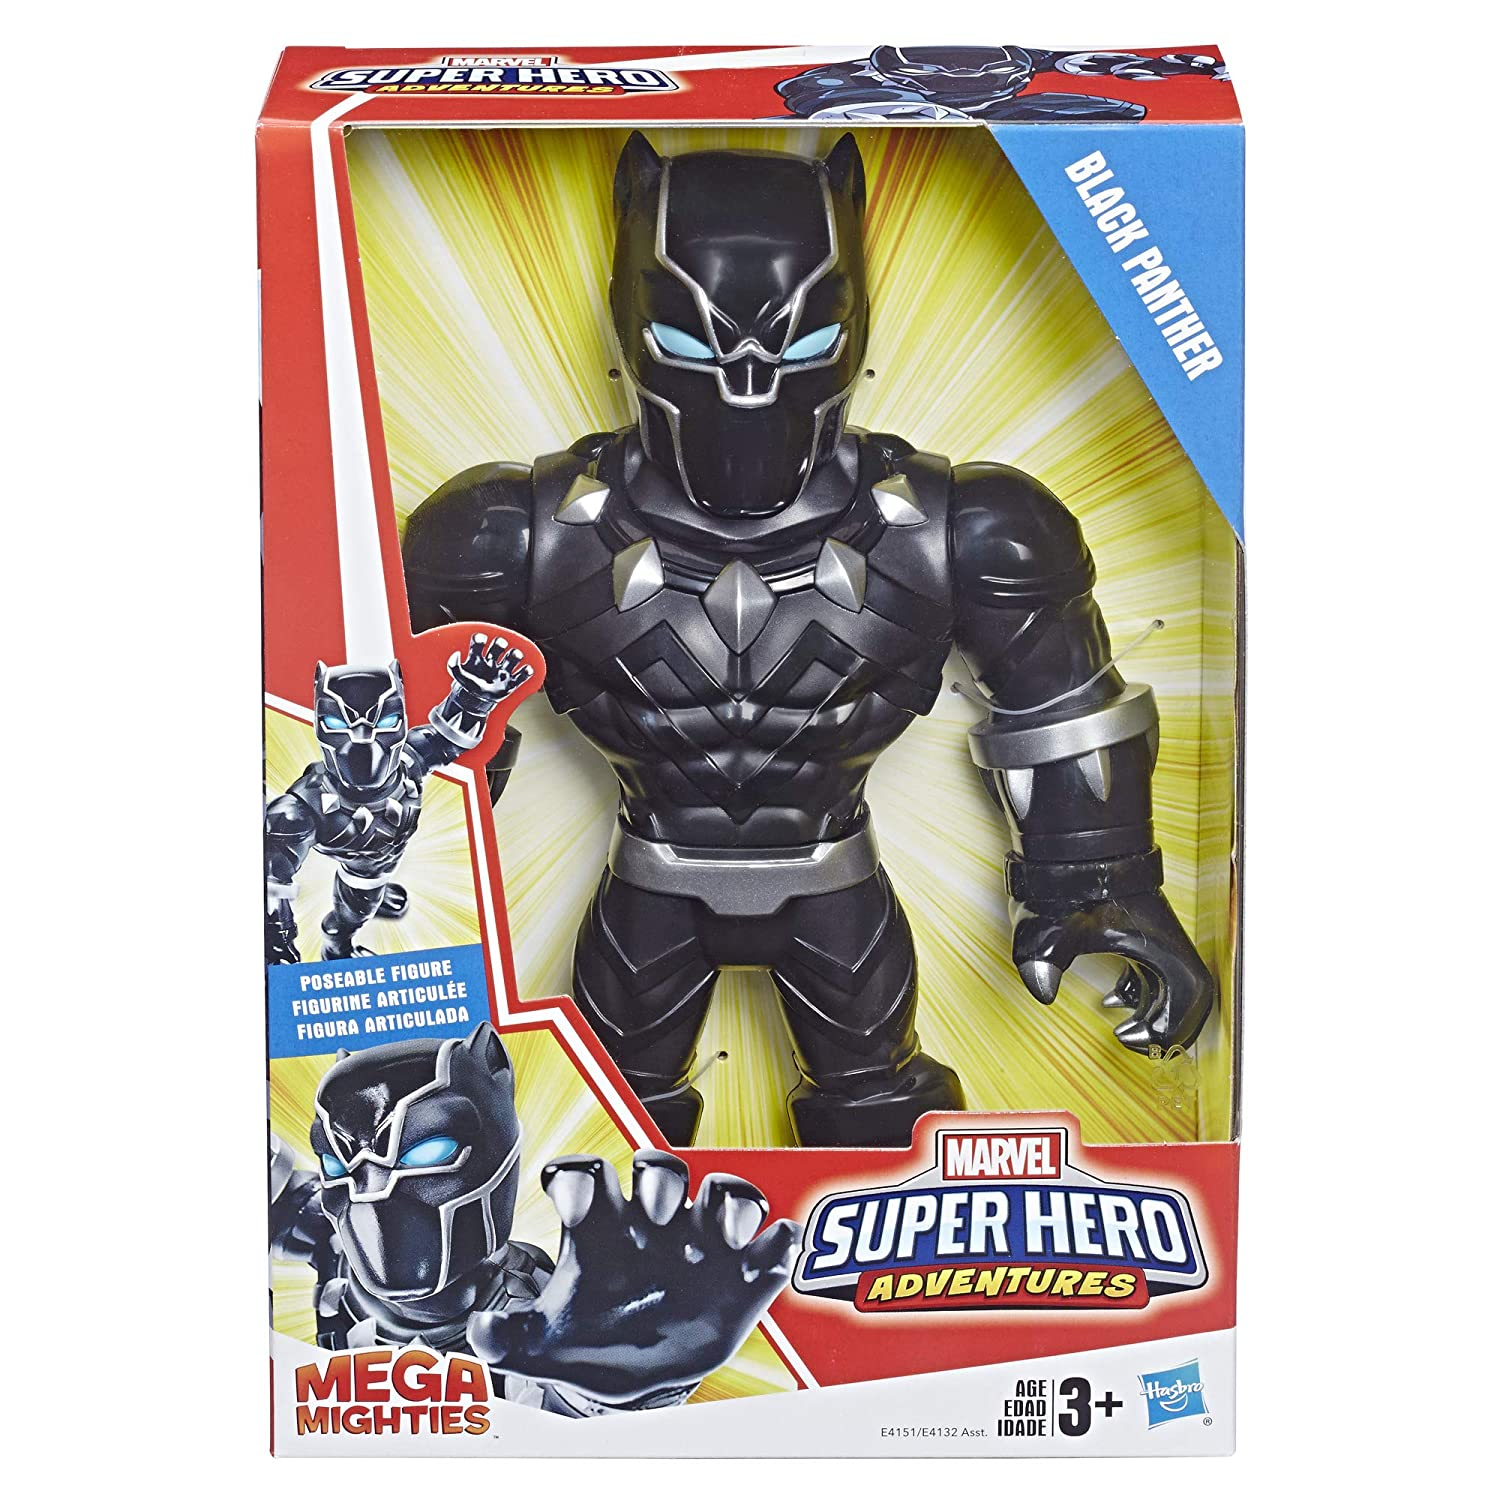 Playskool Heroes Marvel Super Hero Adventures Mega Mighties Black Panther Collectible 10 Action Figure Toys for Kids Ages 3 /& Up